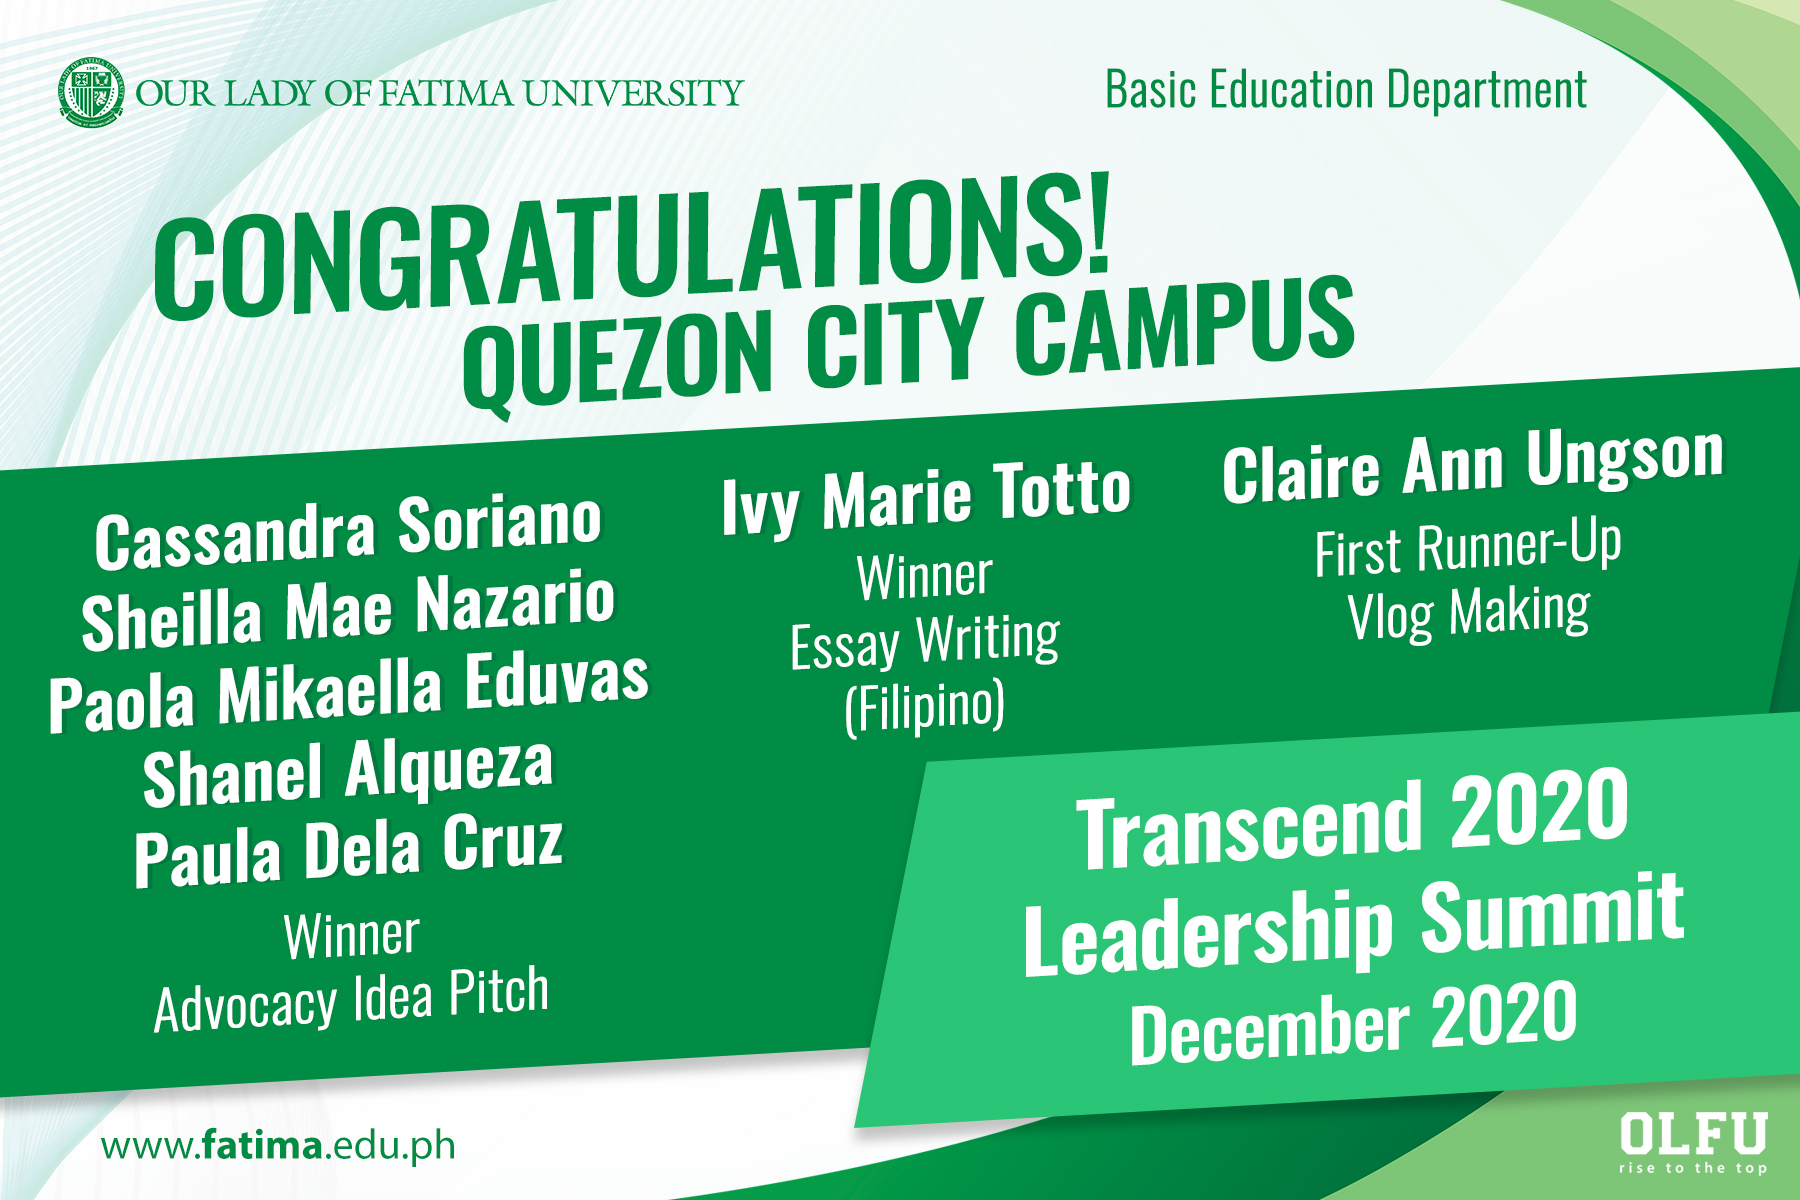 Learners of BED QC take wins in Transcend 2020 Leadership Summit